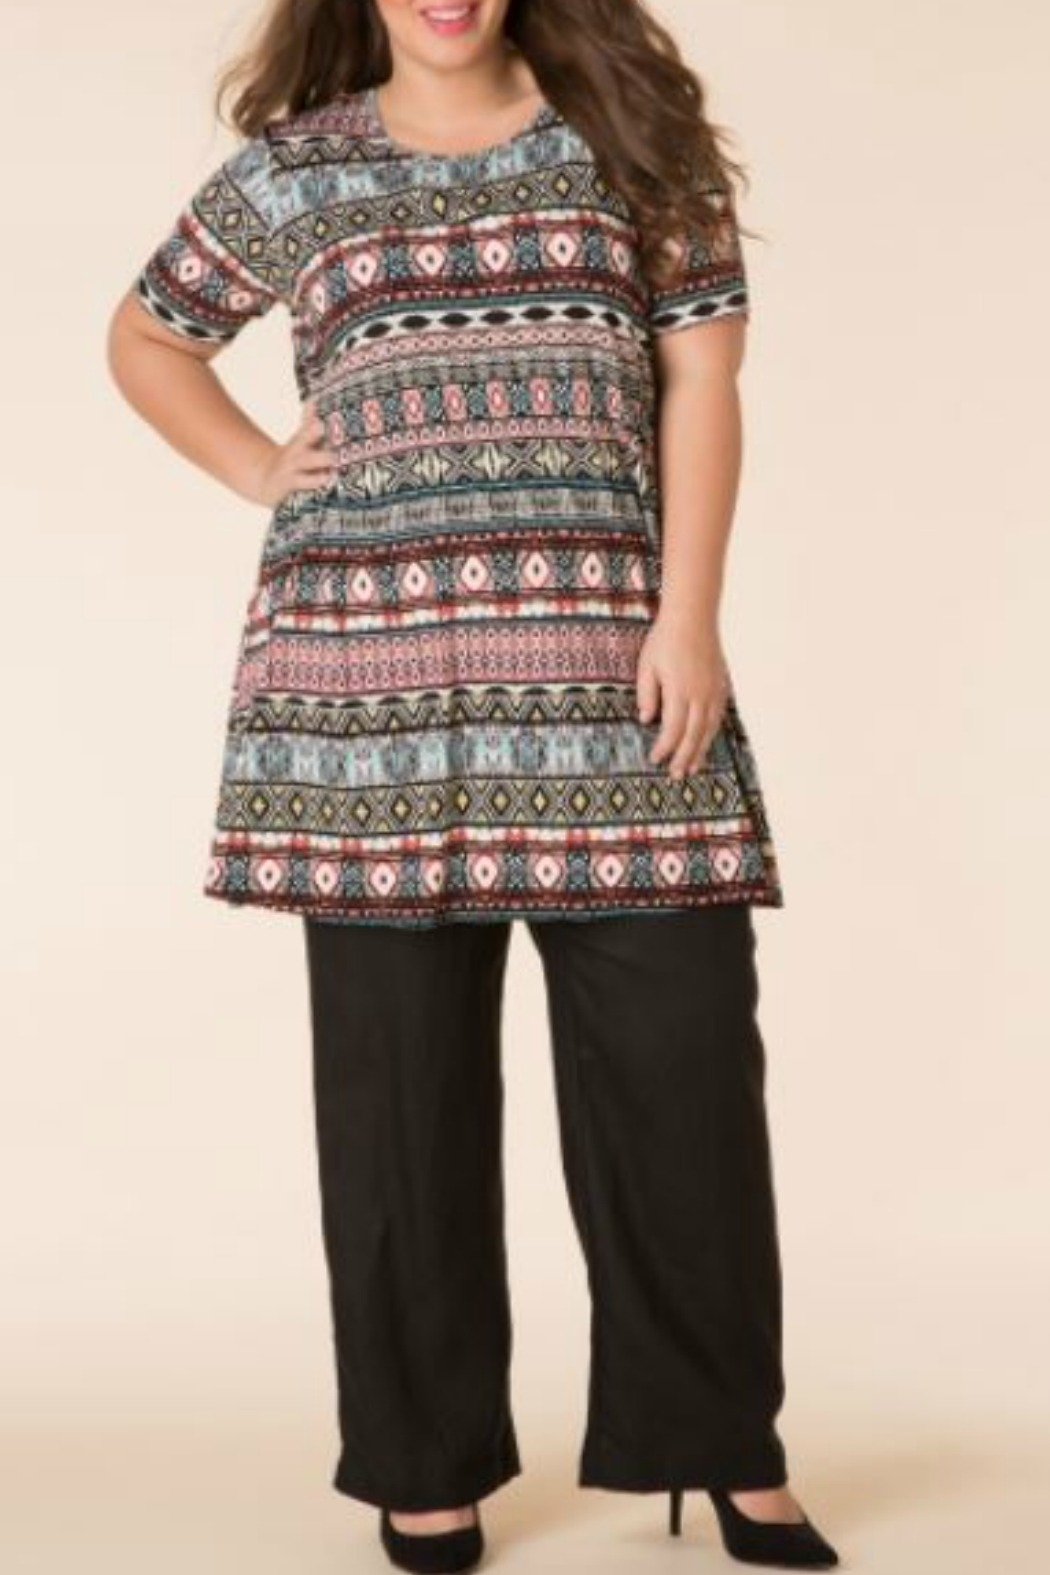 Yest Multicolored Tribal Top - Main Image